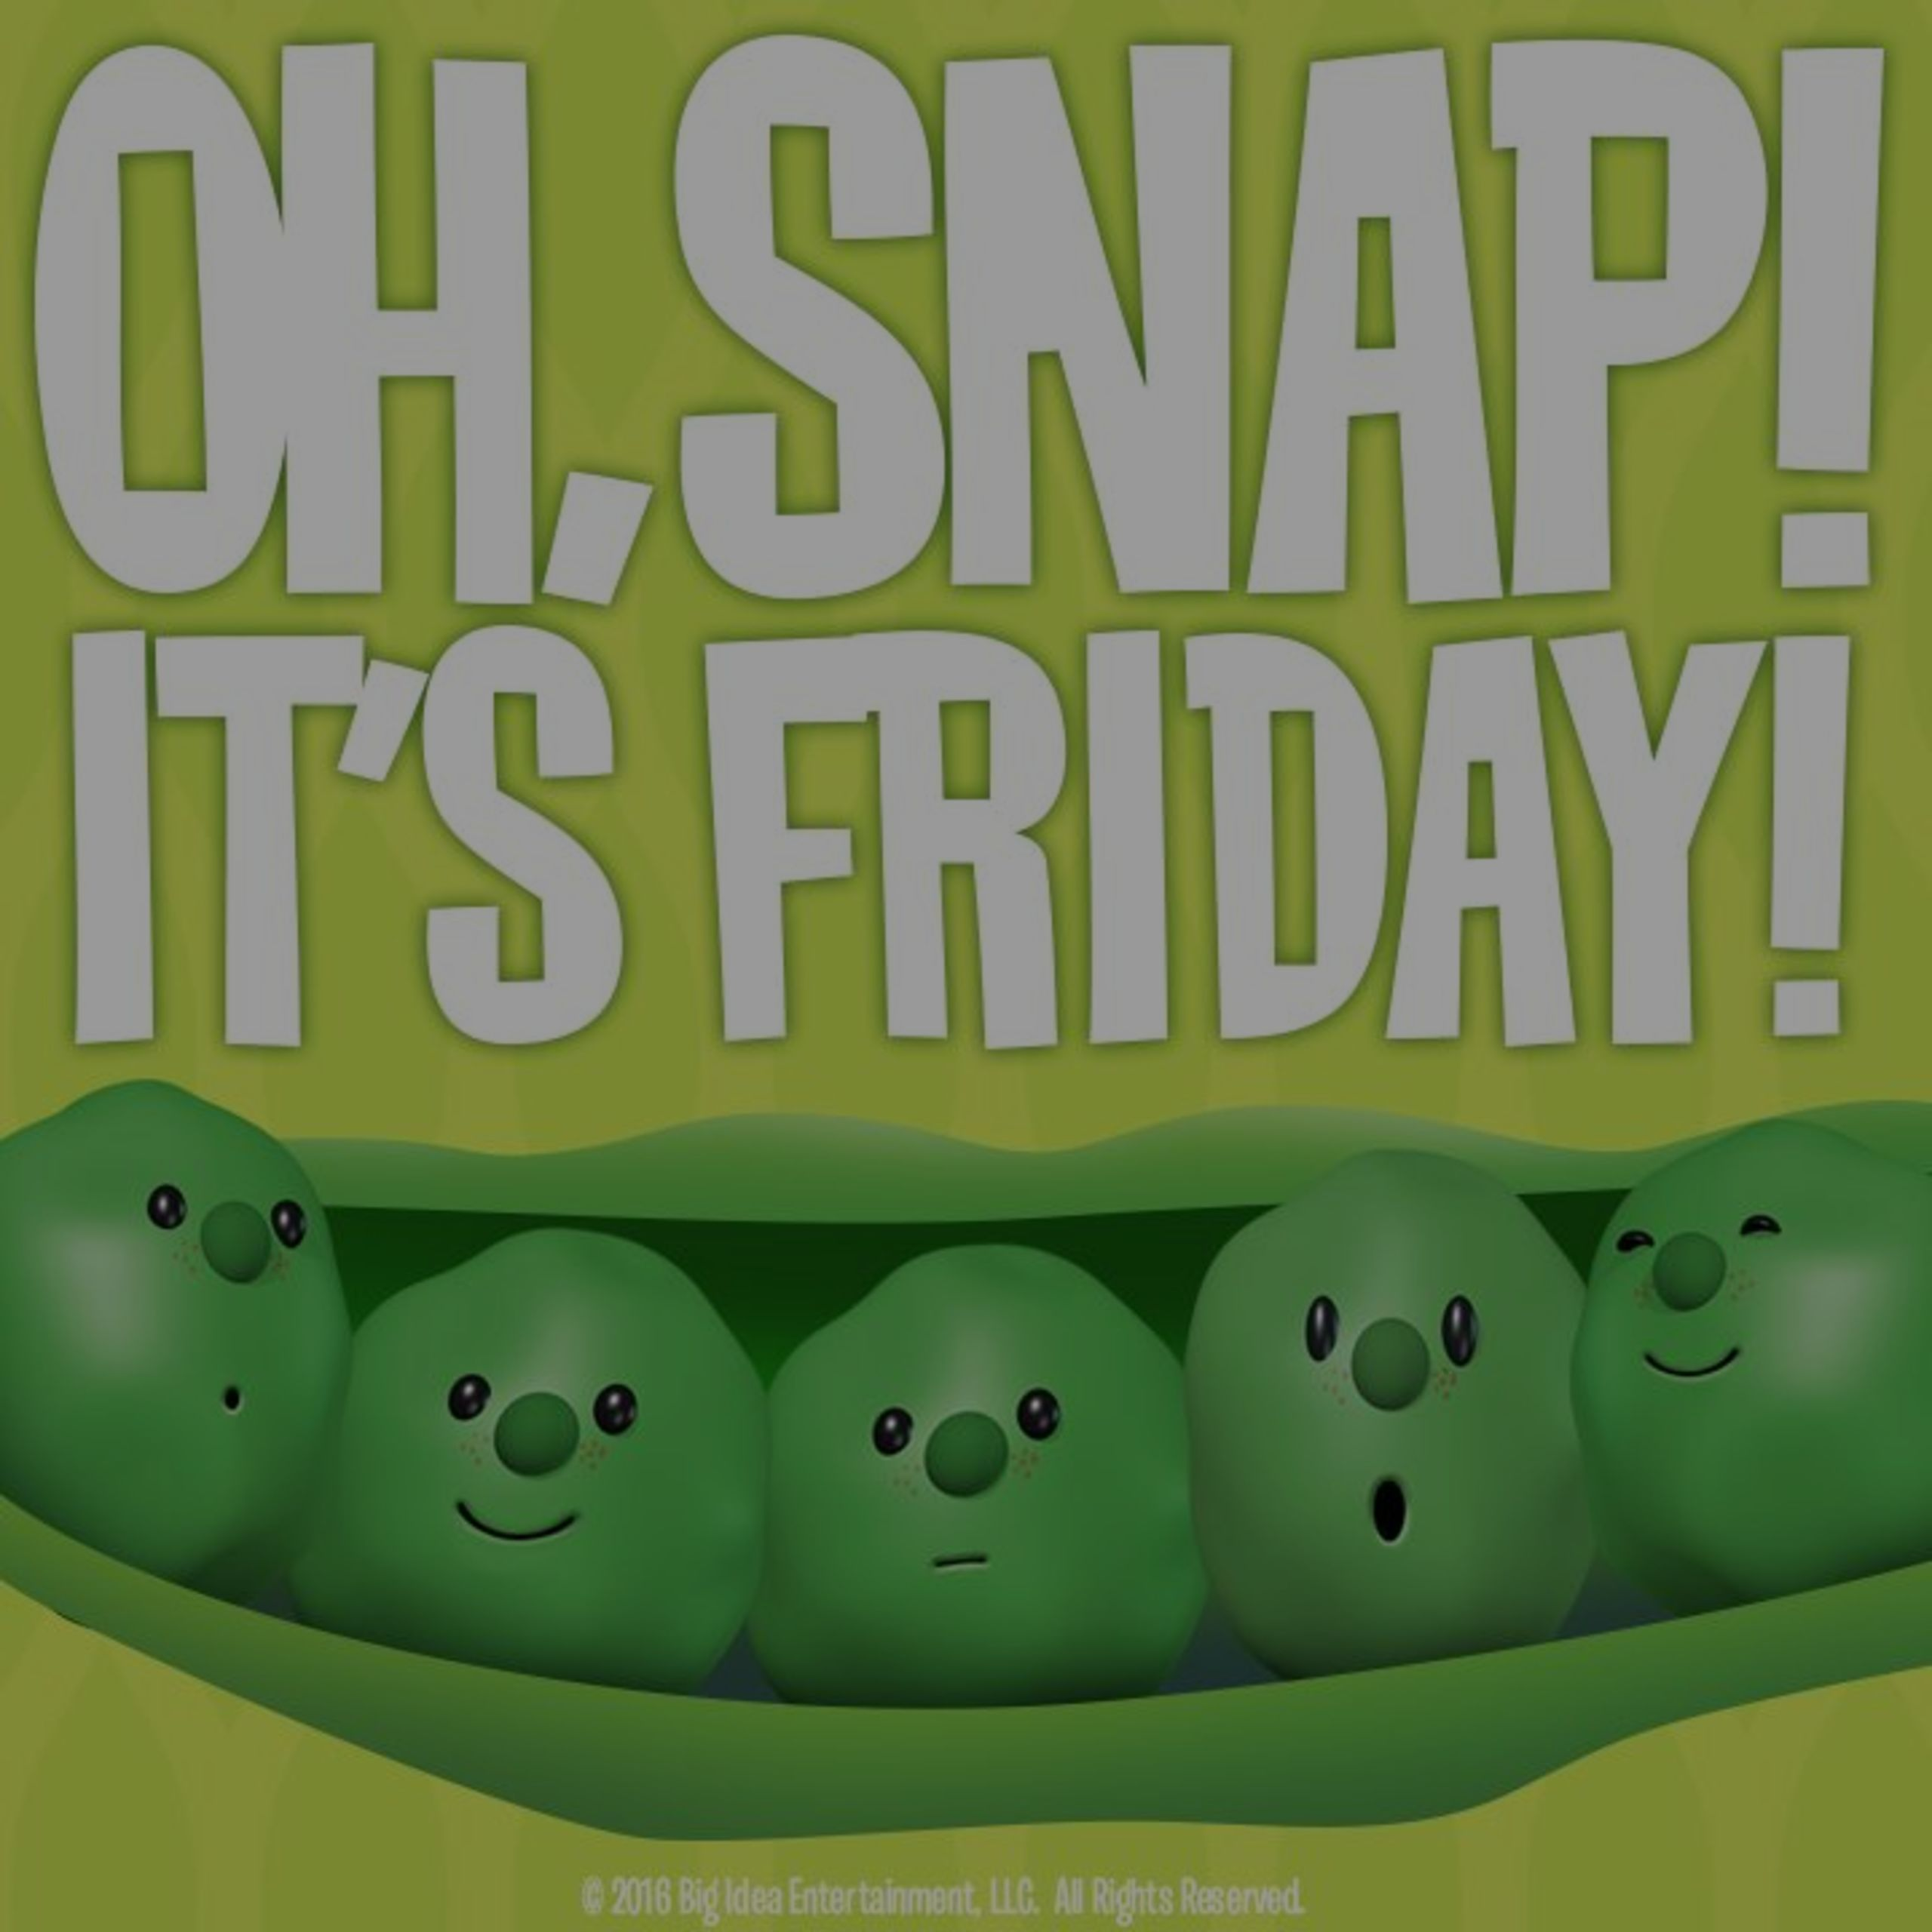 Oh Snap! Happy Friday!